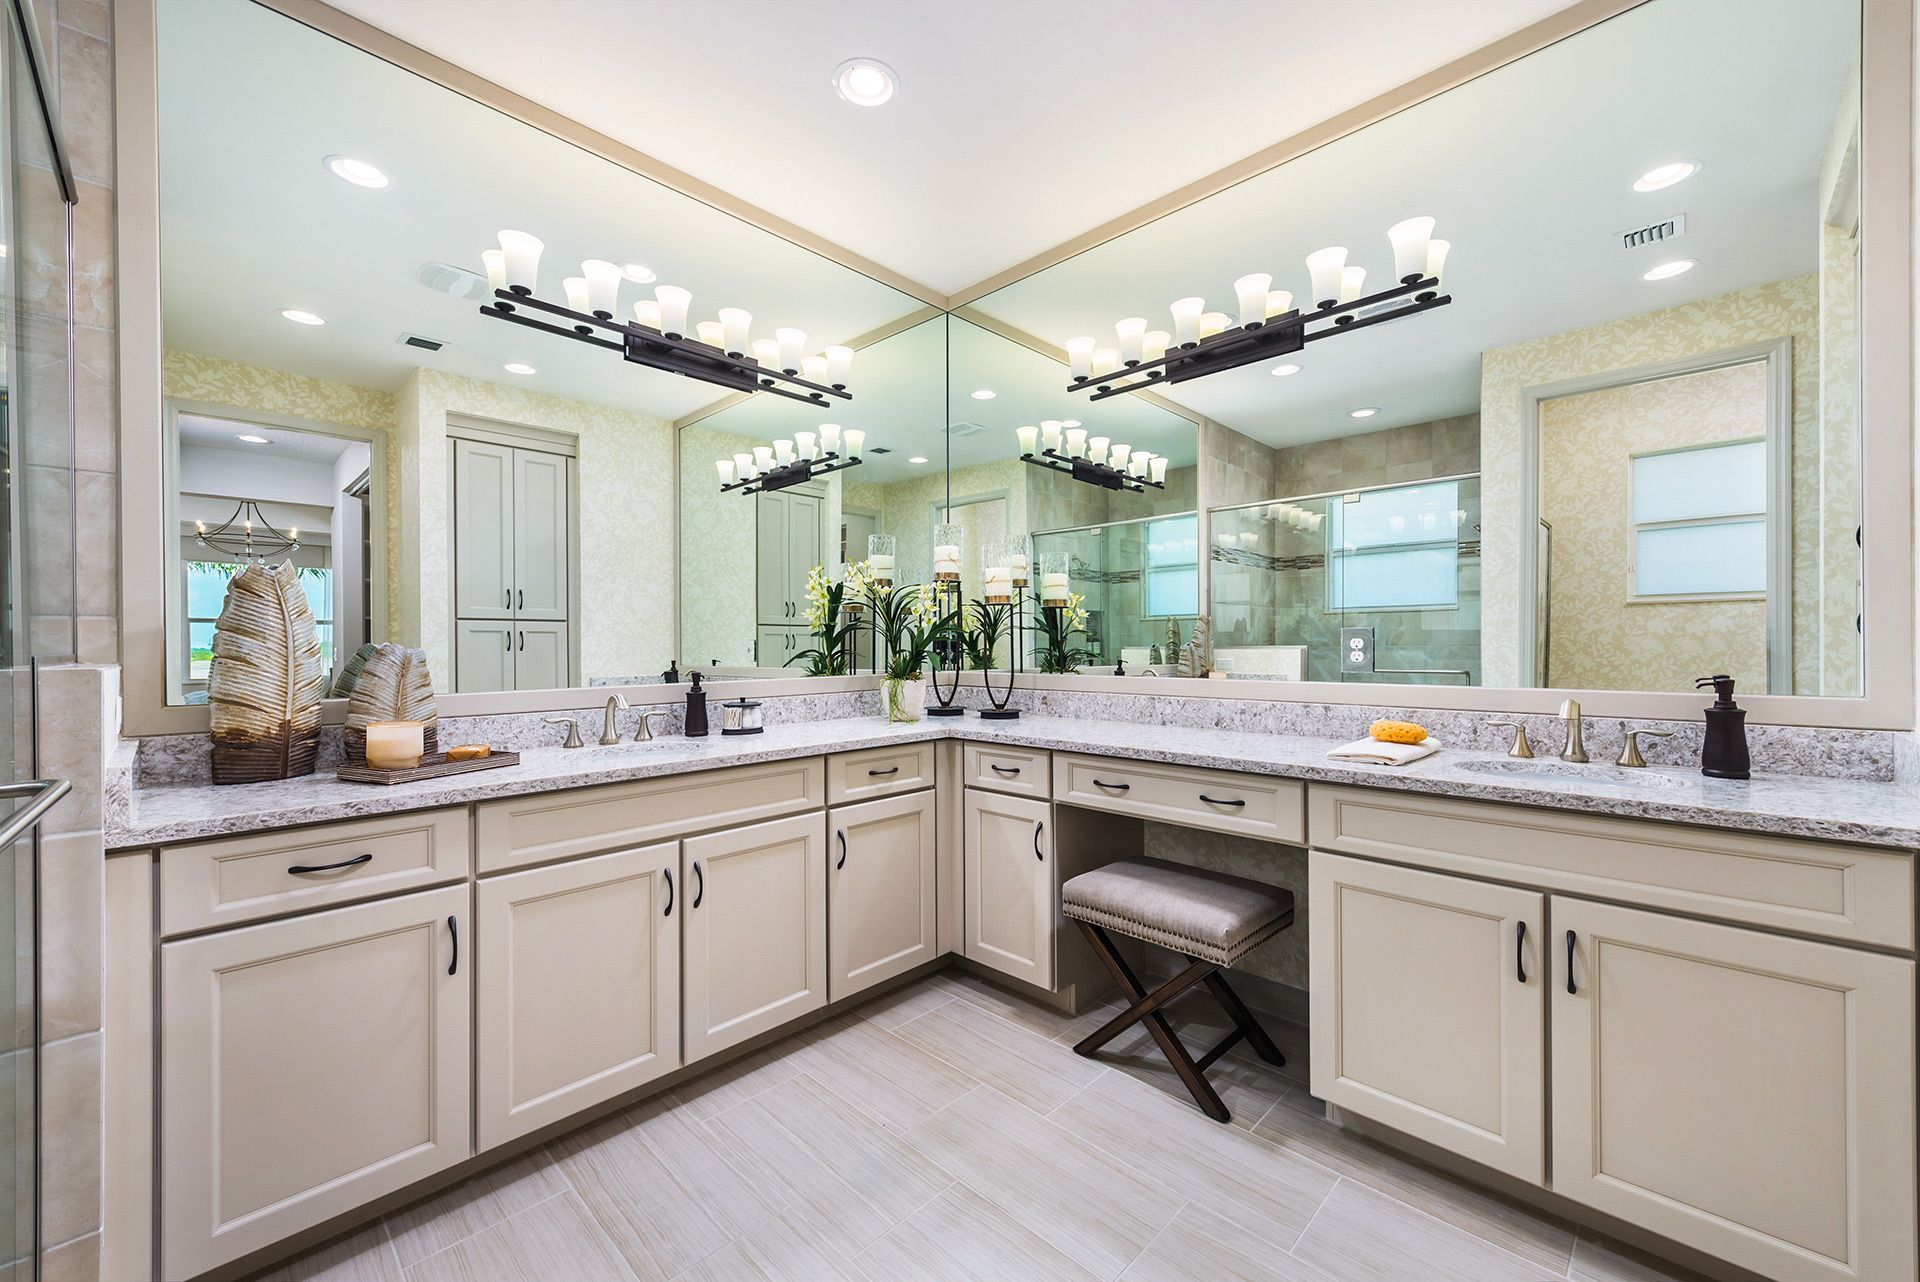 Bathroom featured in the Palazzo By GL Homes in Martin-St. Lucie-Okeechobee Counties, FL